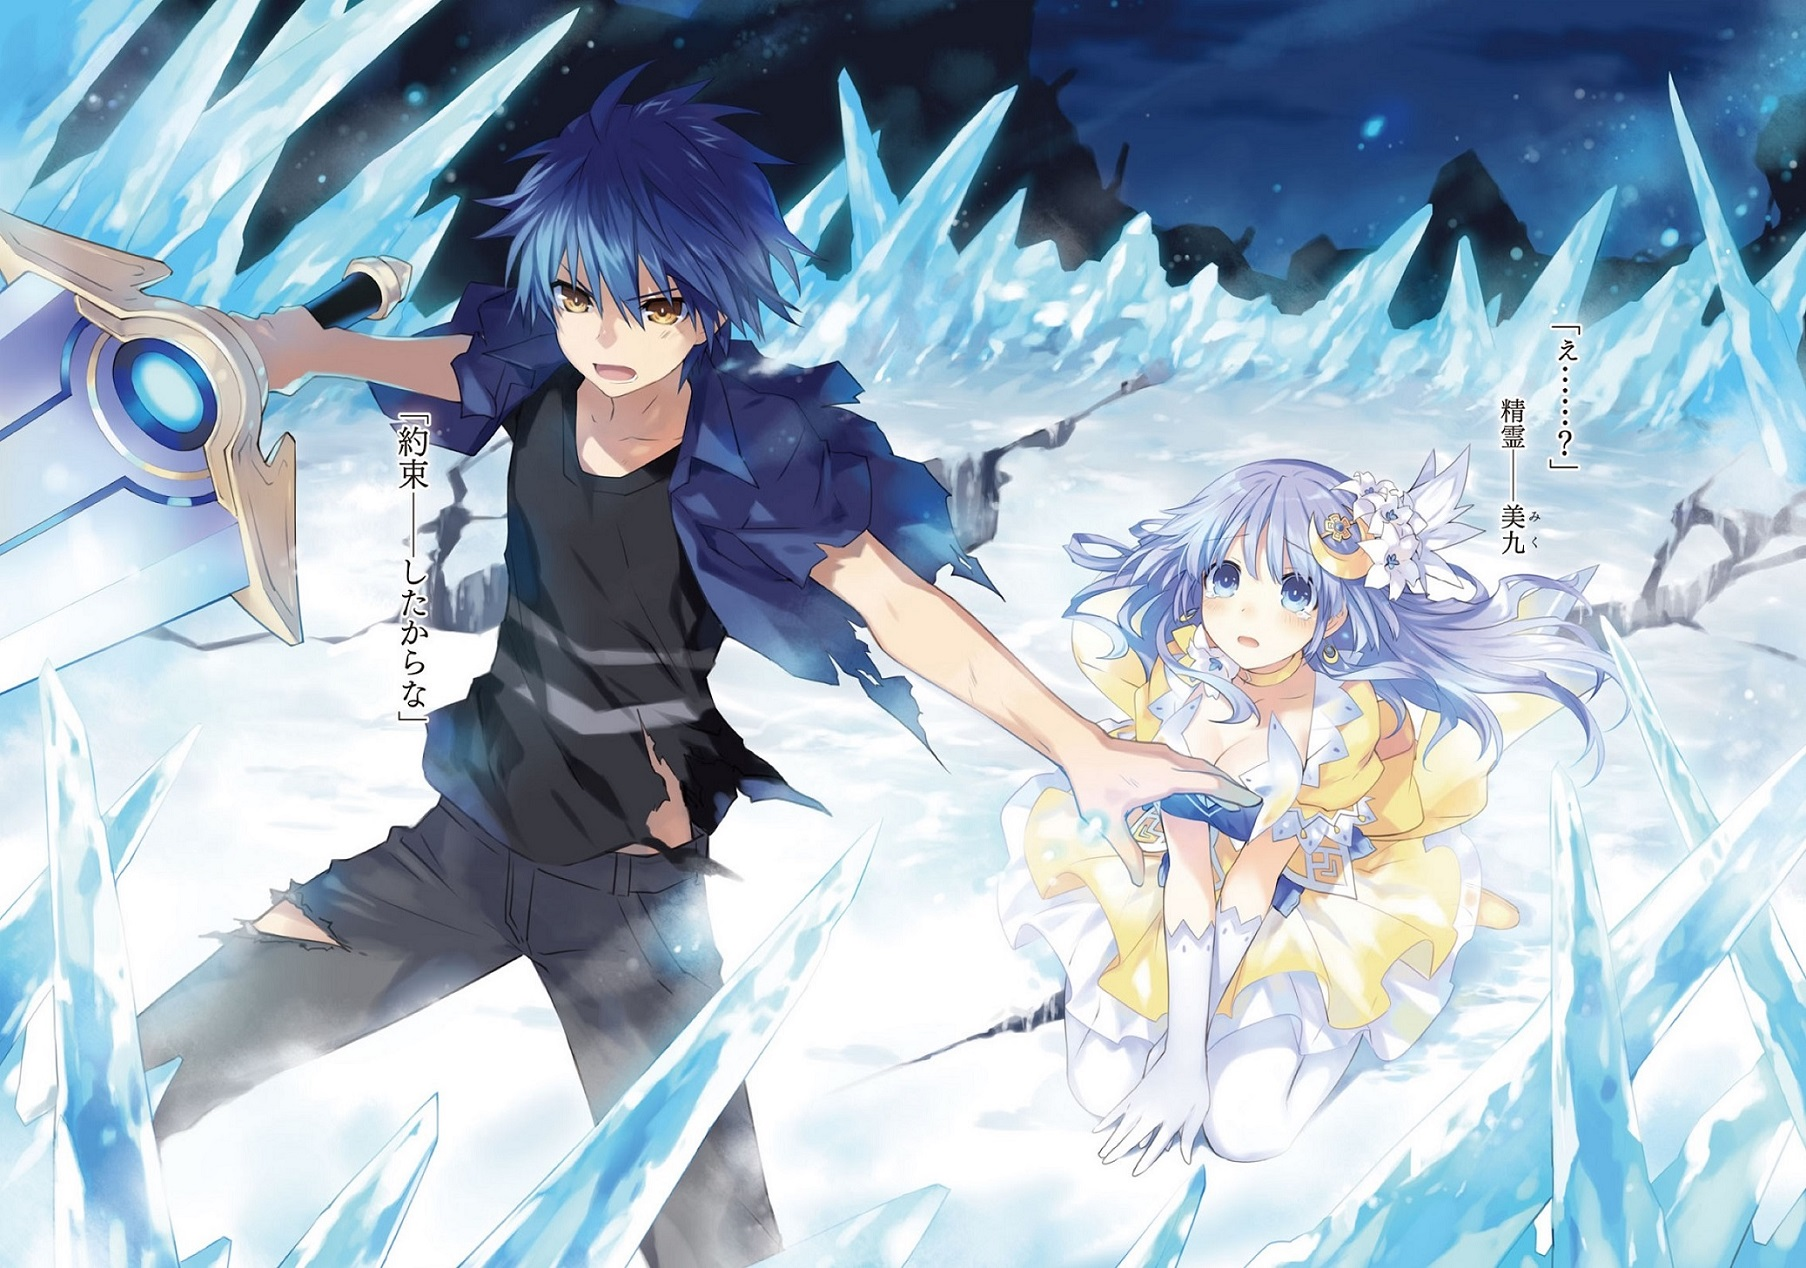 [Anime Review]: Date A Live | The Geek Clinic